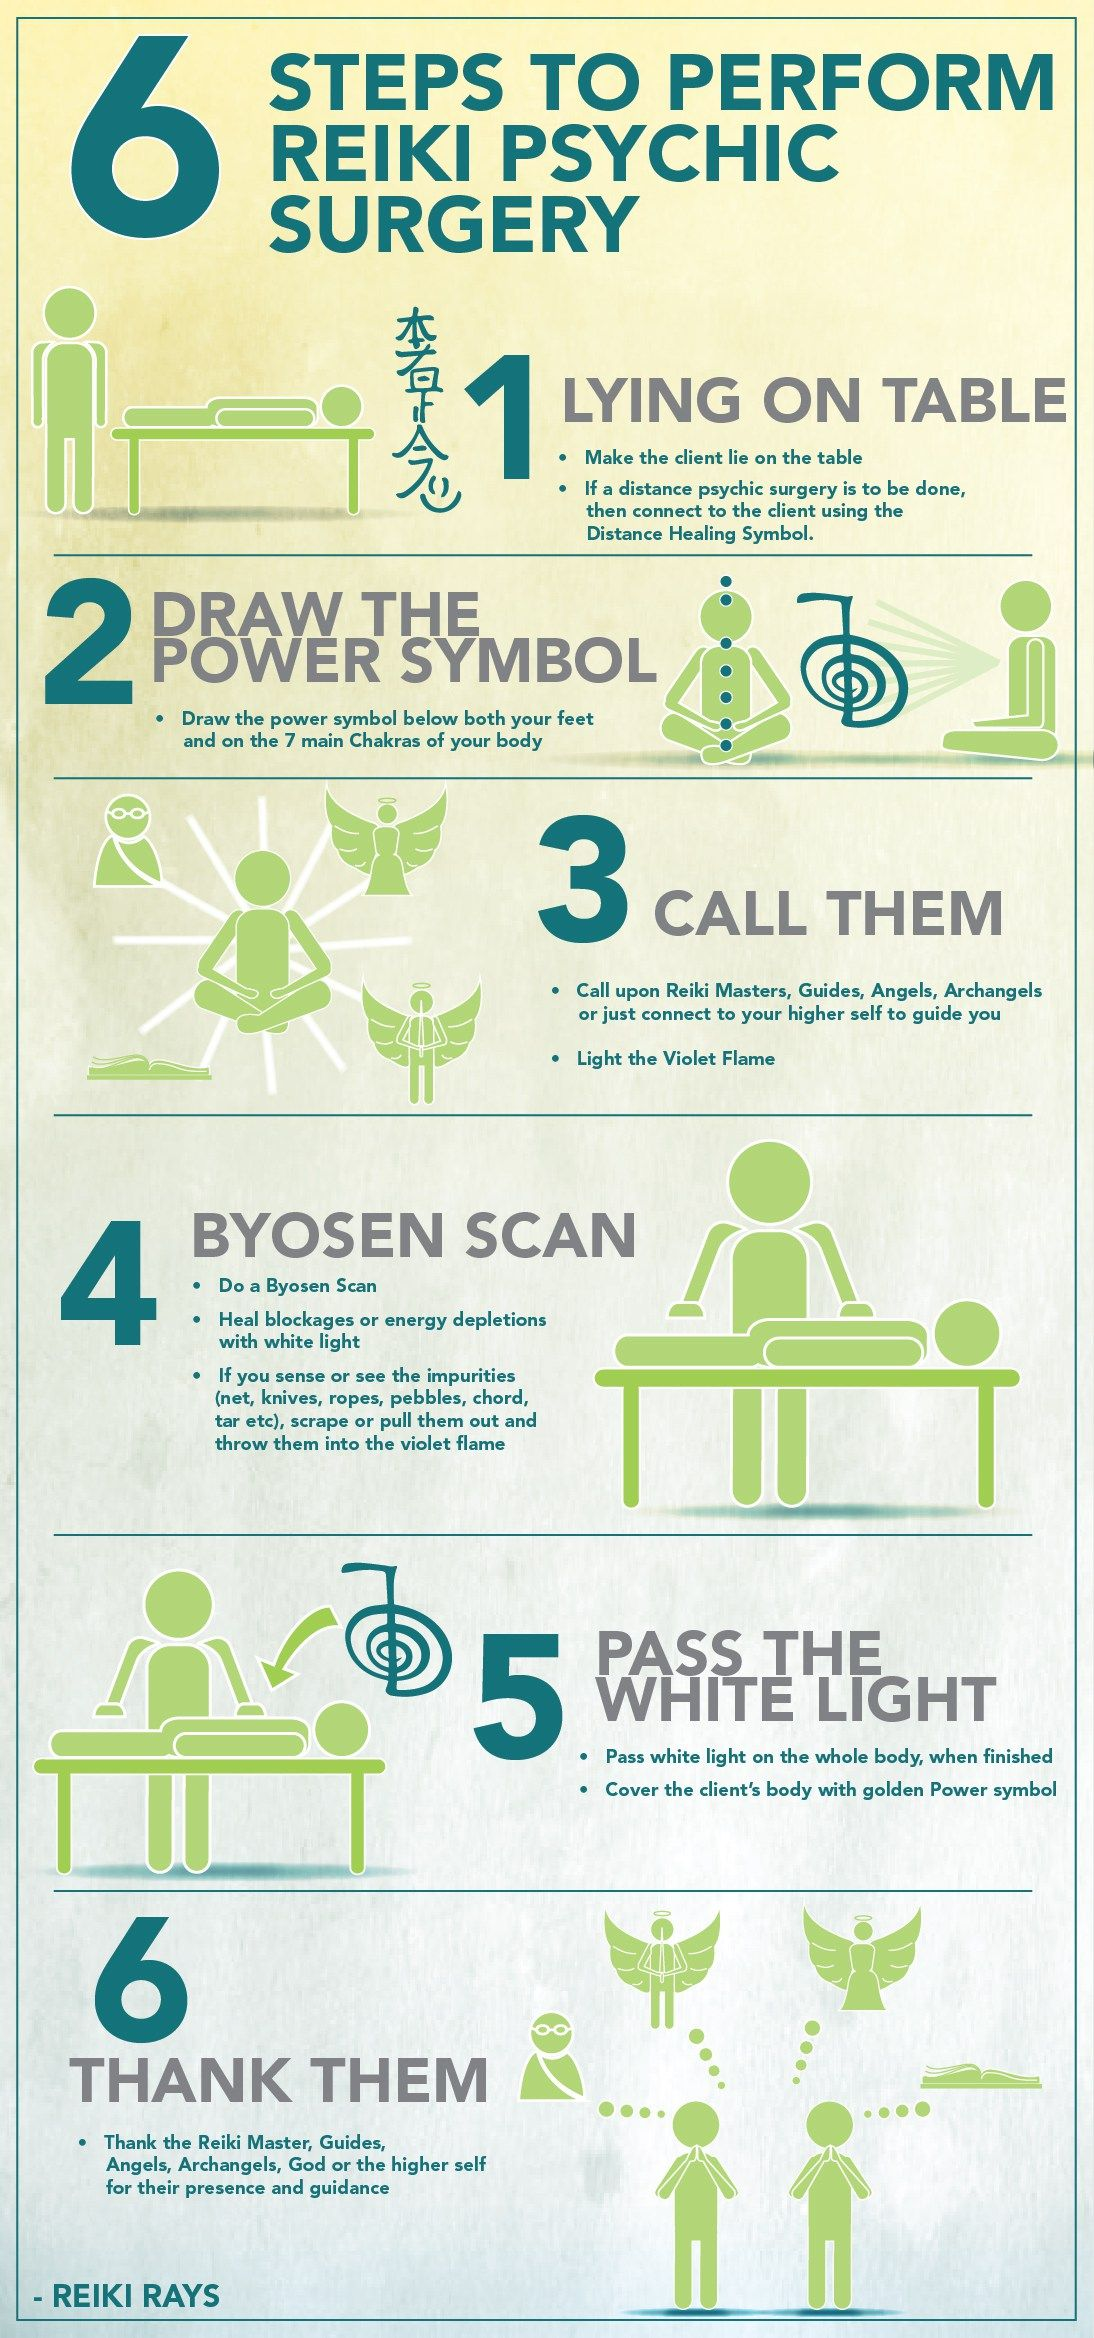 Infographic 6 steps to perform reiki psychic surgery psychics 6 steps to perform reiki psychic surgery biocorpaavc Choice Image